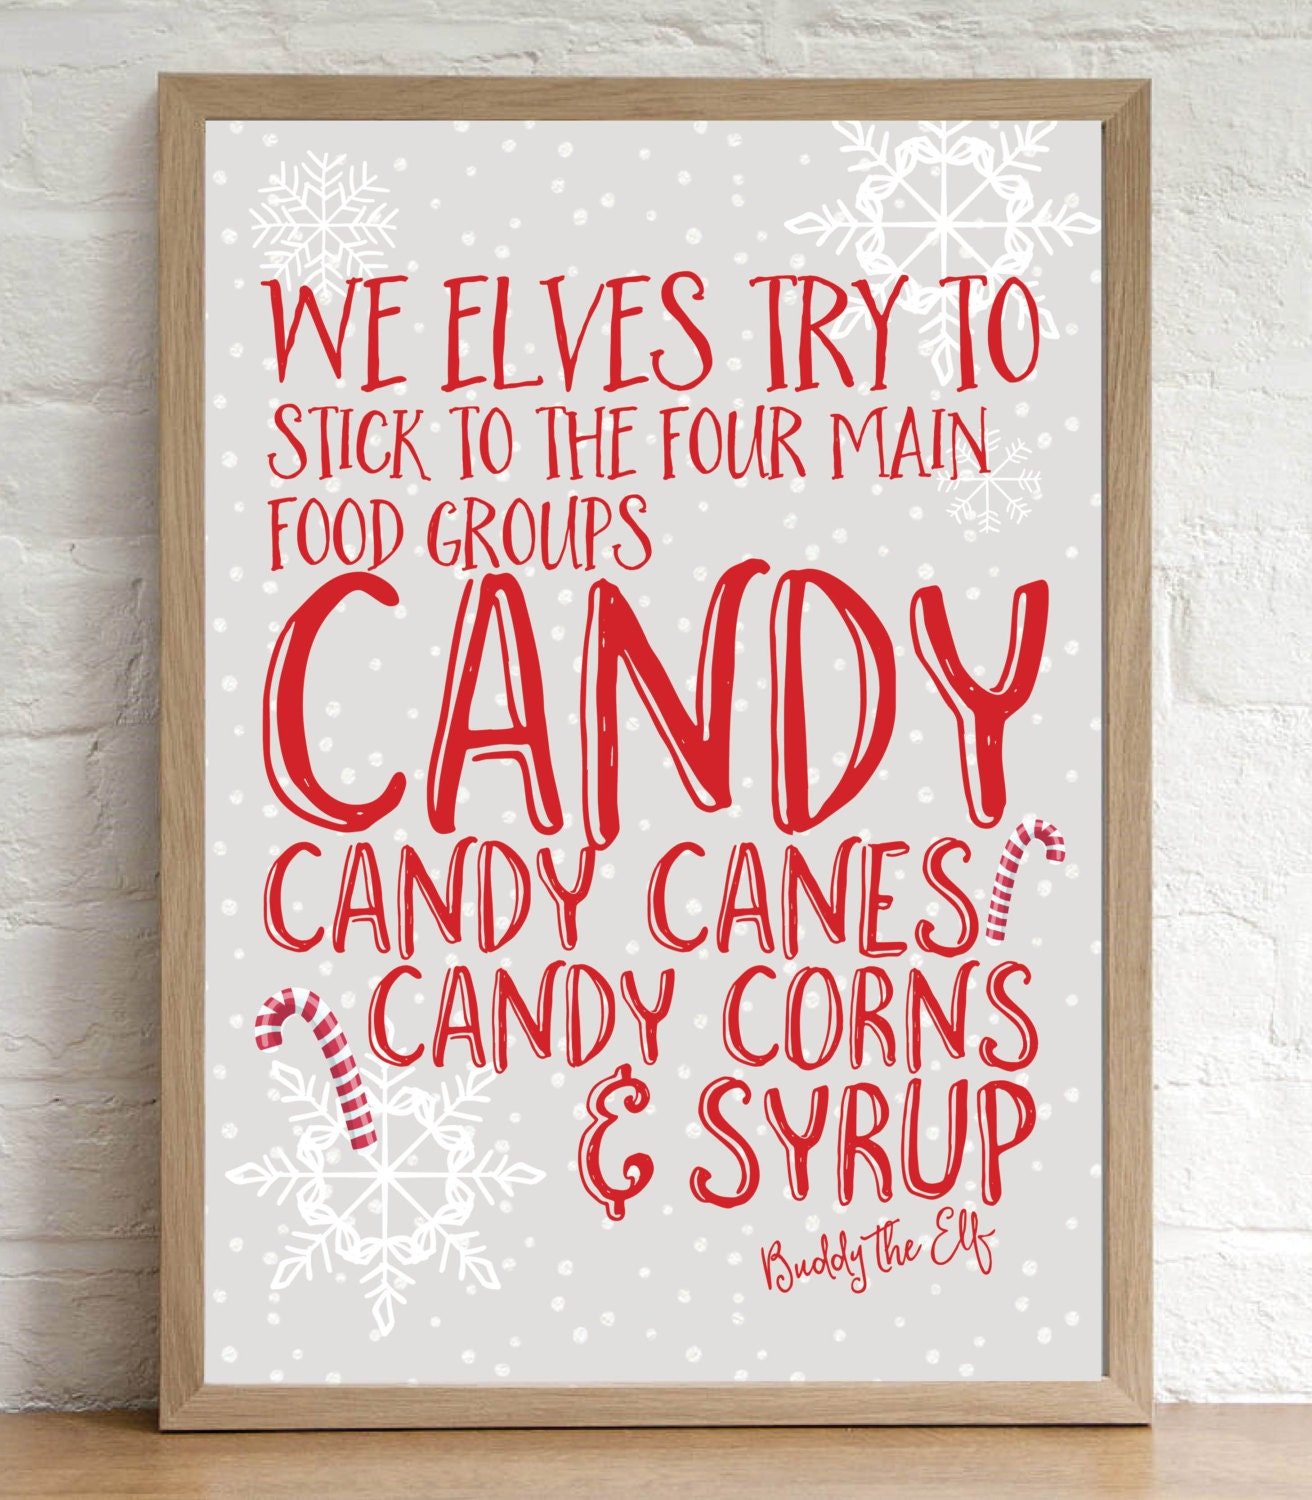 Buddy the elf quote christmas decoration print candy cane